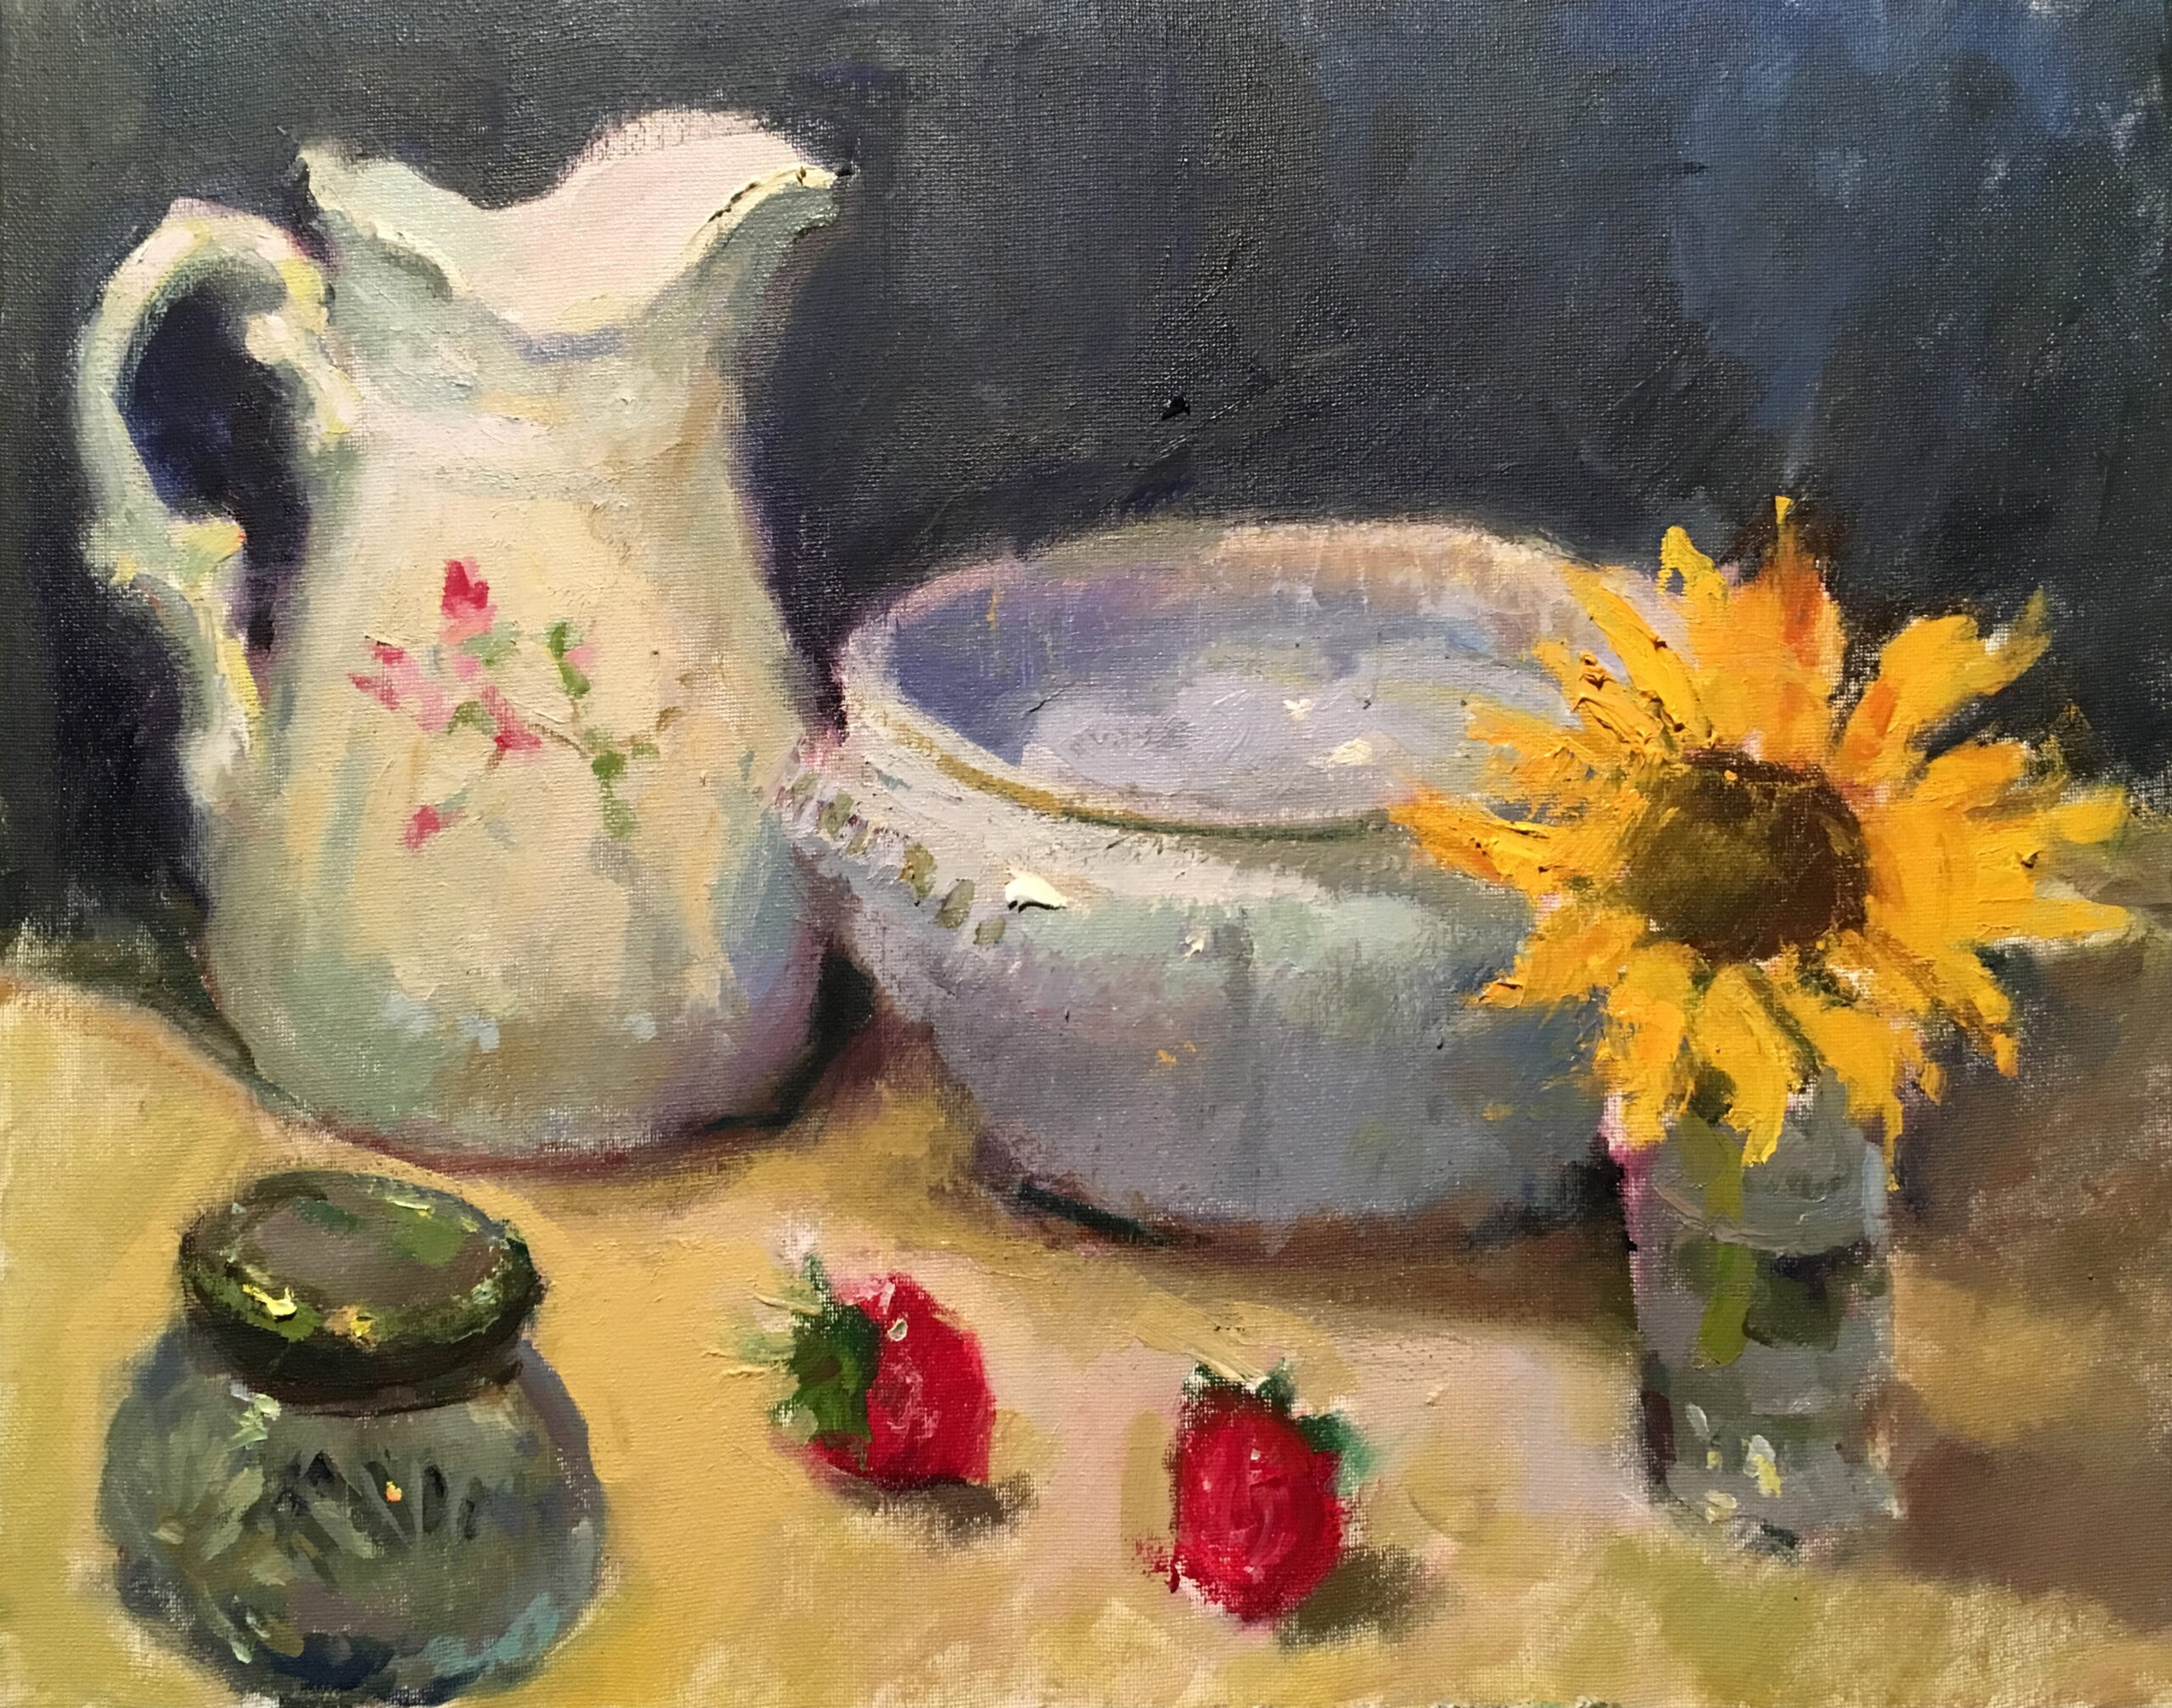 Pitcher and Tureen, Oil on Canvas, 16 x 20 Inches, by Susan Grisell, $550